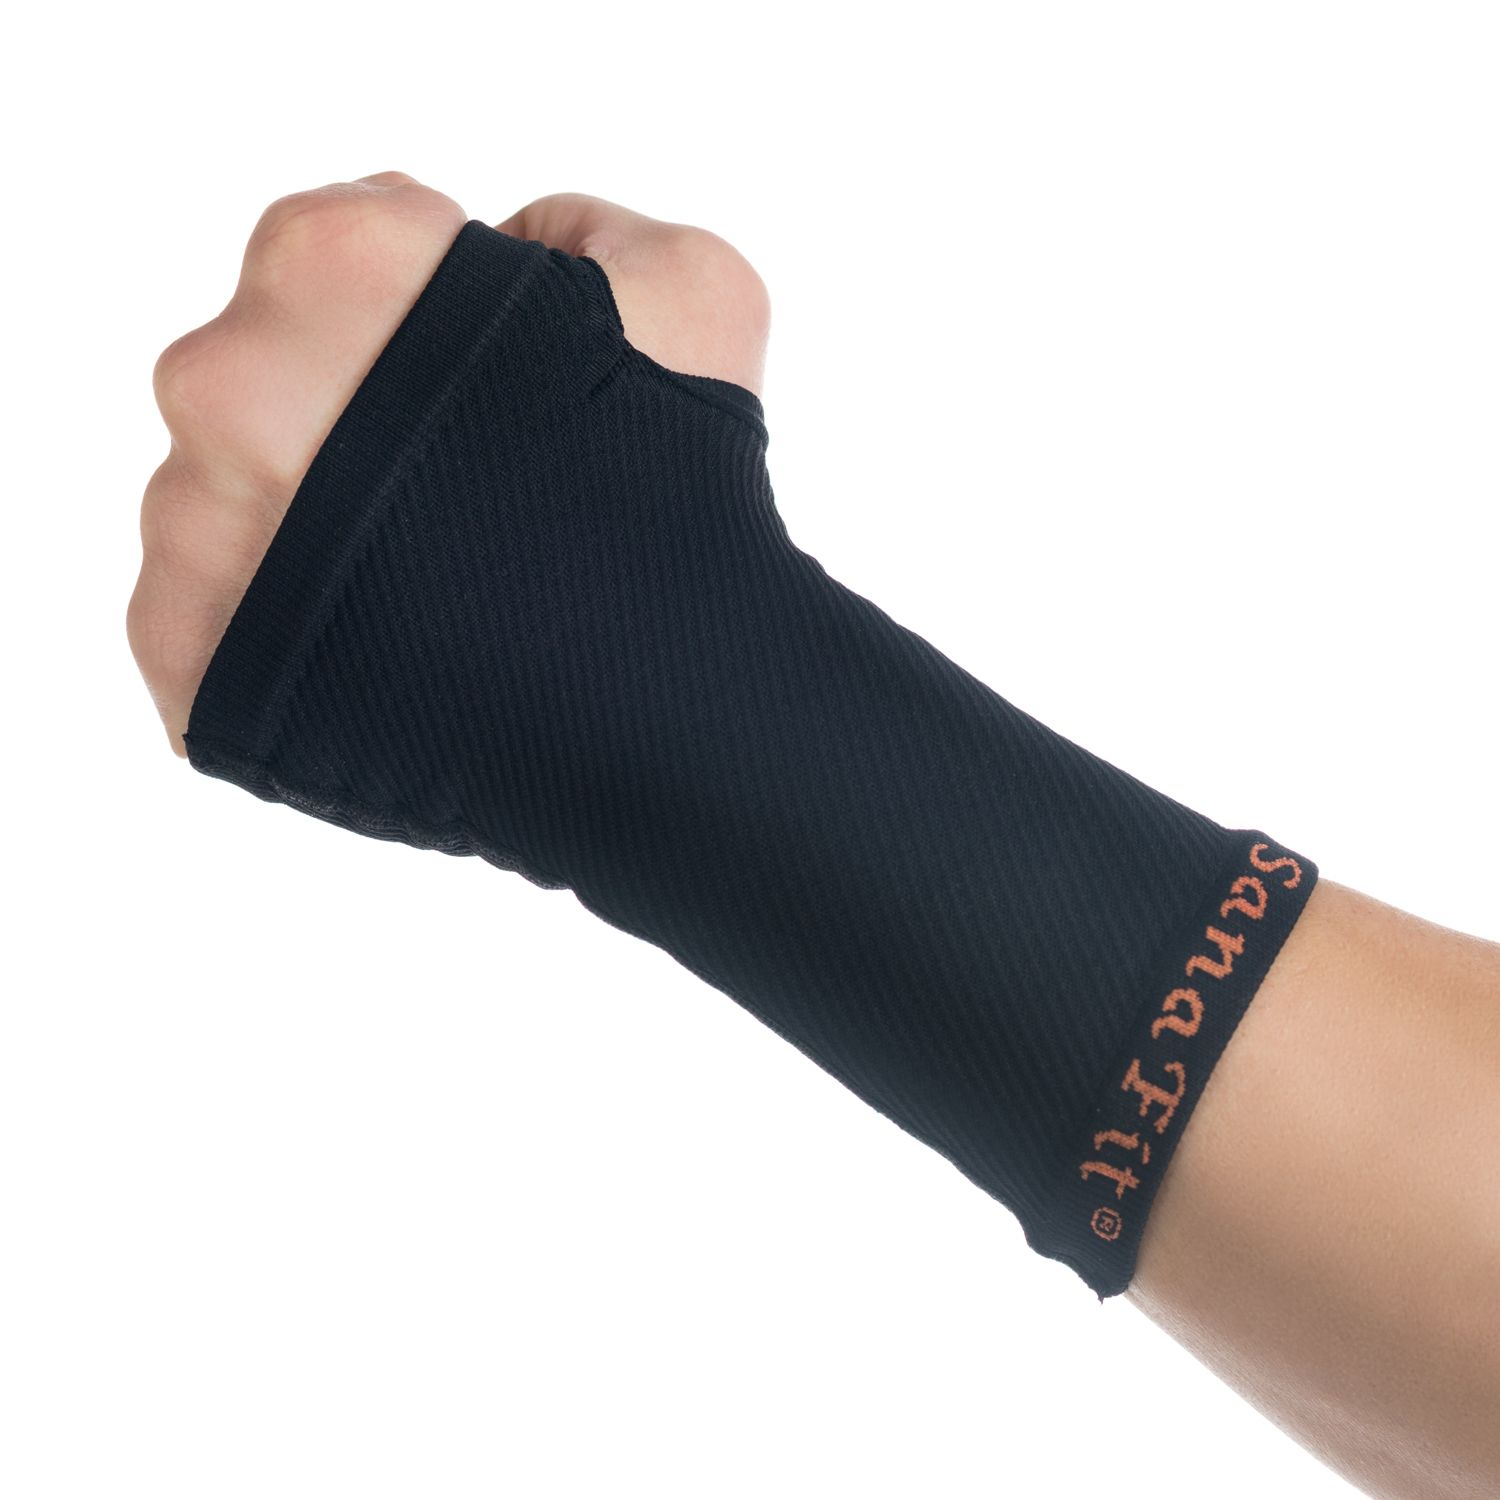 [IR] Palm/Wrist Support Wrist support, Repetitive strain